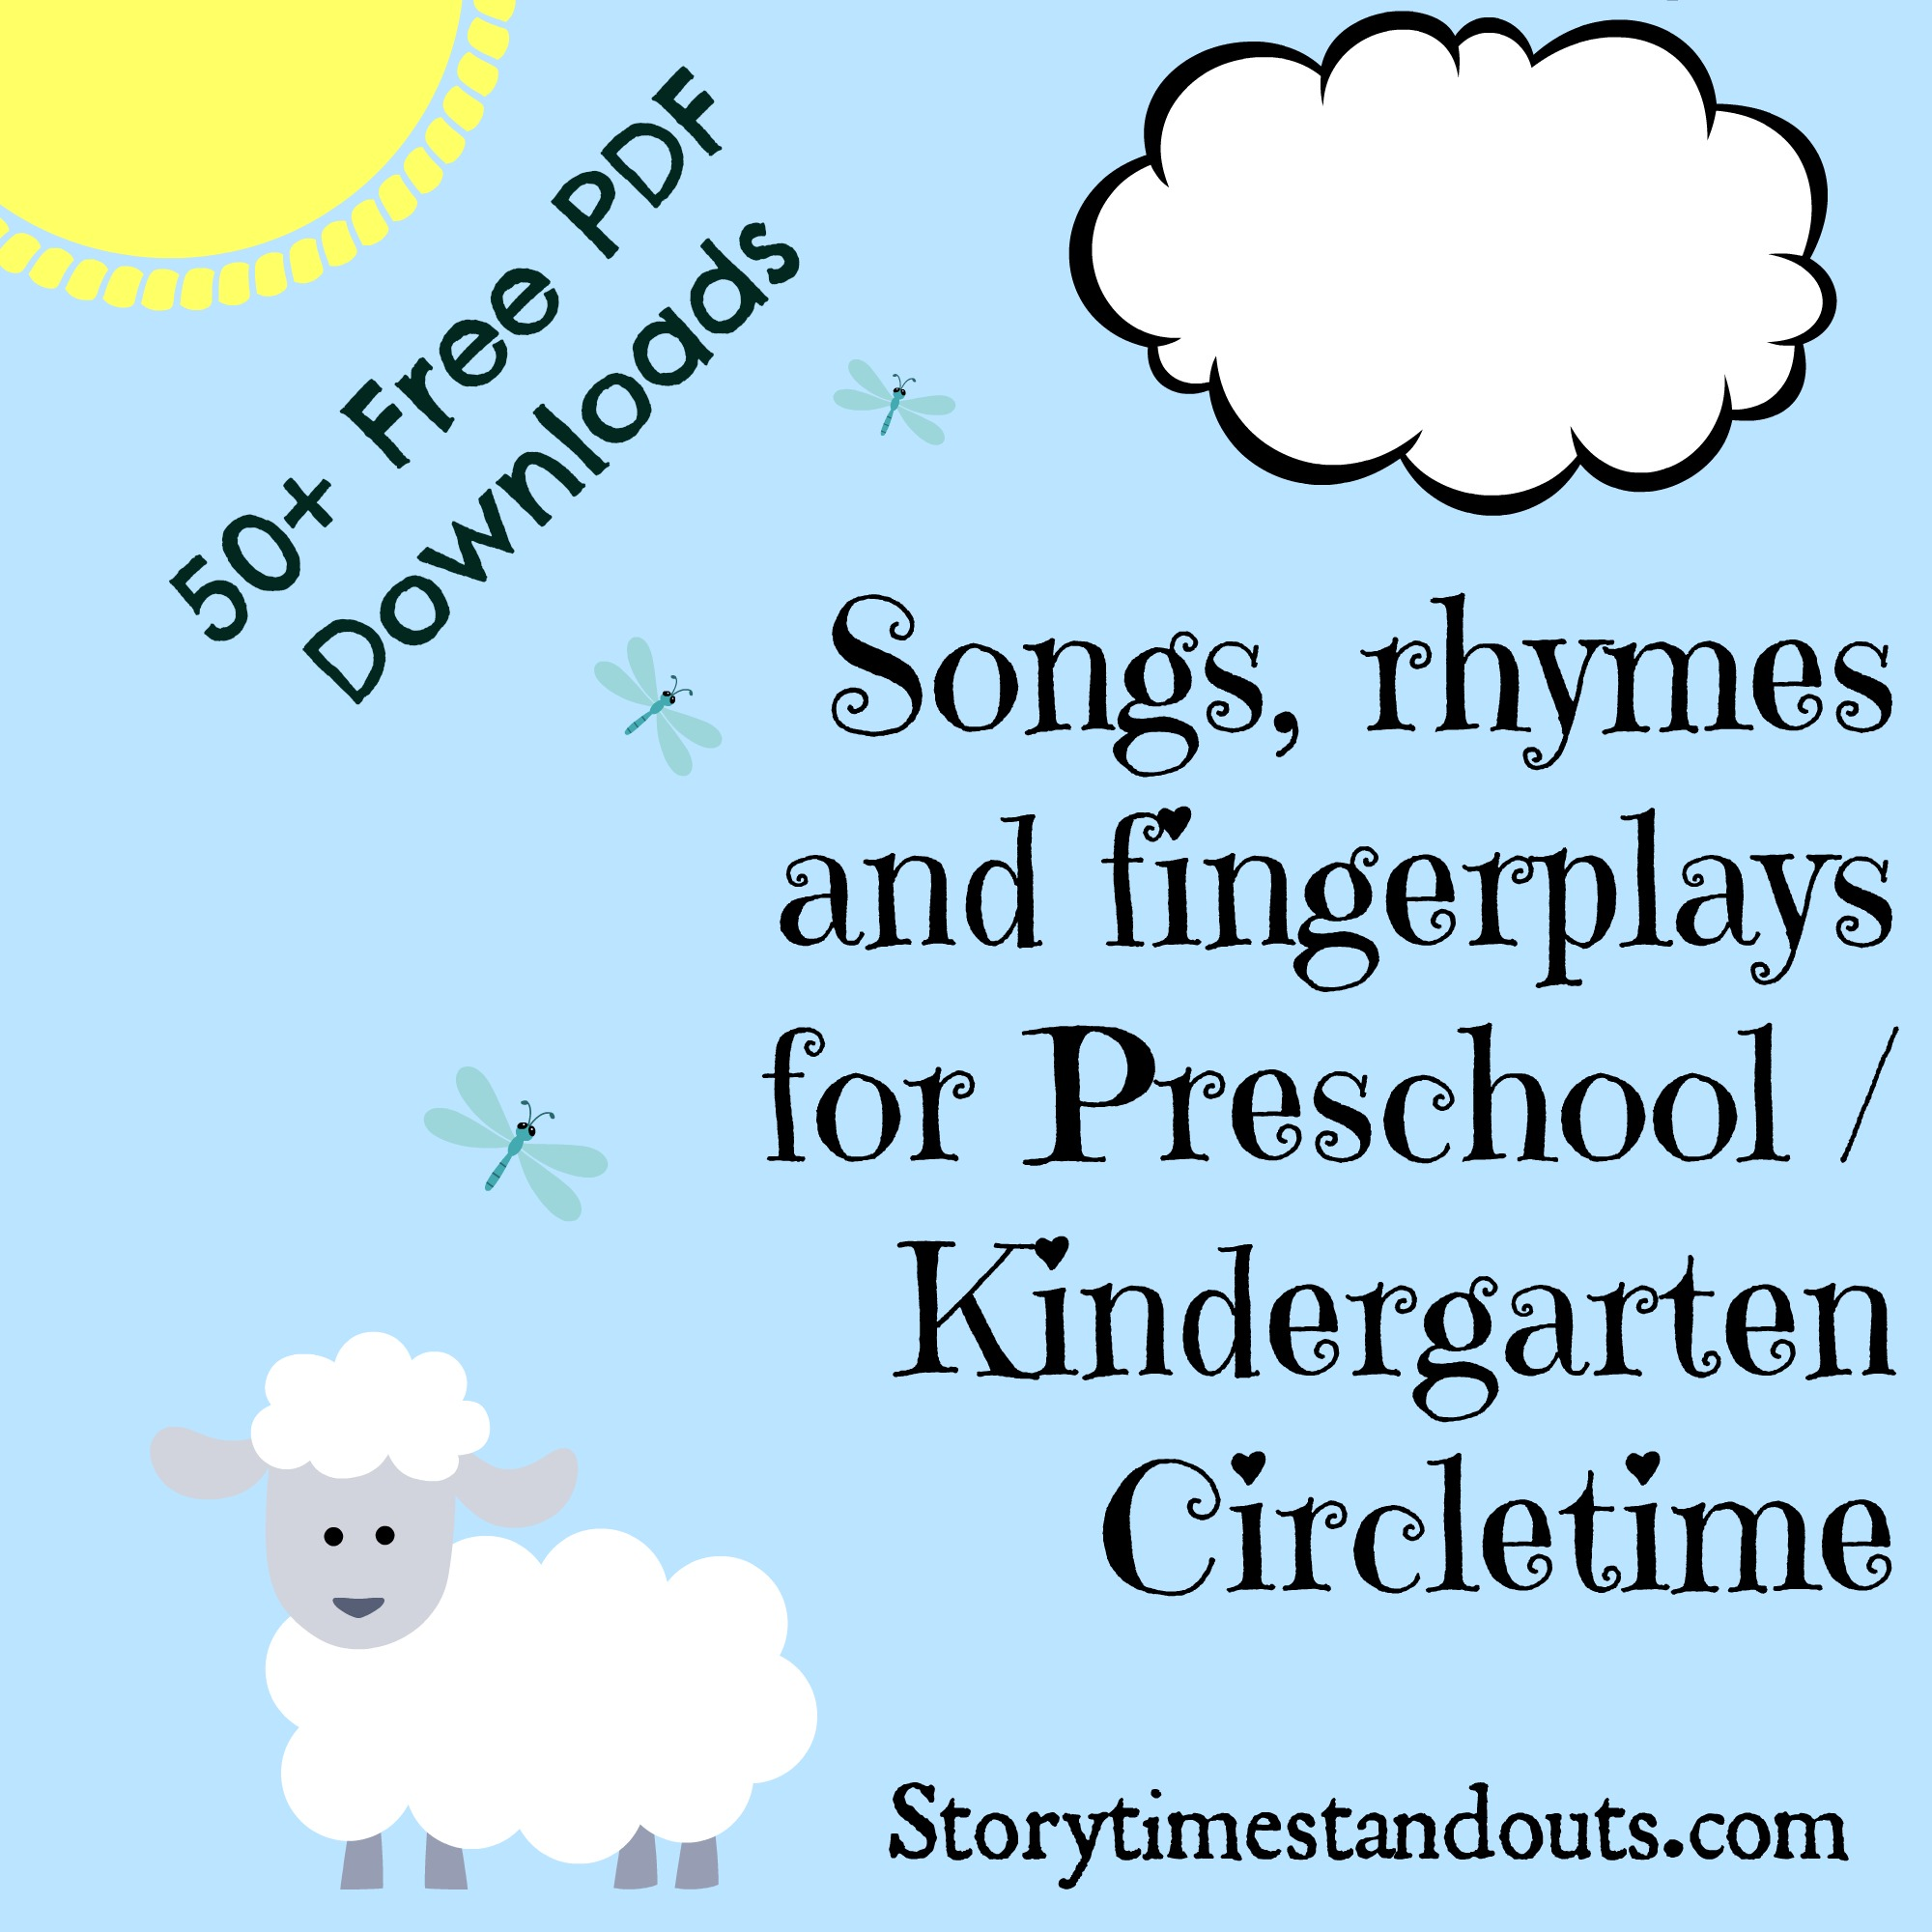 Free Printable Nursery Rhymes To Share With Young Children